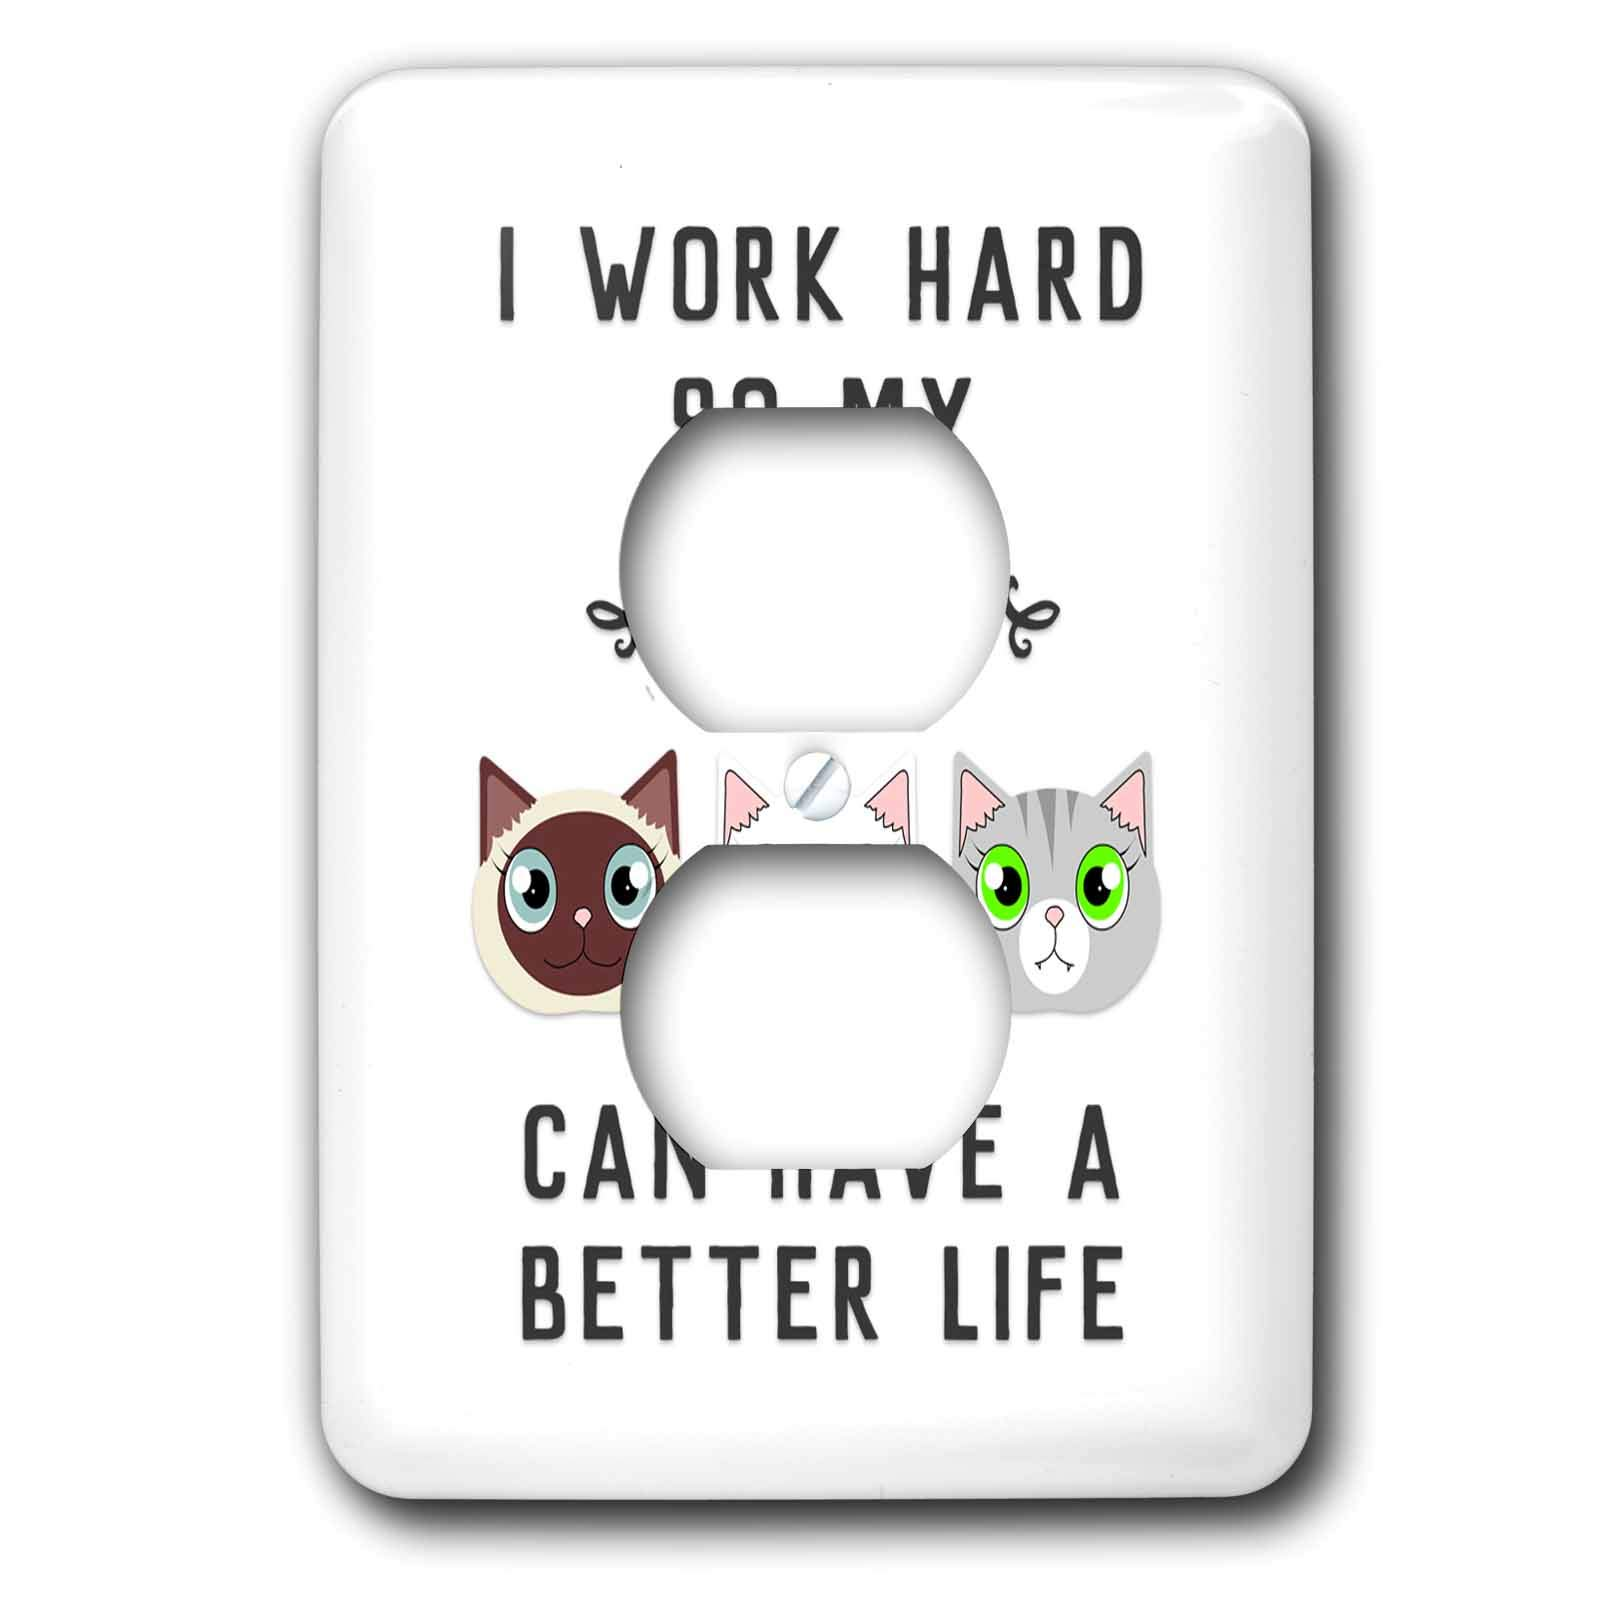 3dRose Janna Salak Designs Text Art - I Work Hard So My Cats Can Have A Better Life - Light Switch Covers - 2 plug outlet cover (lsp_289664_6)